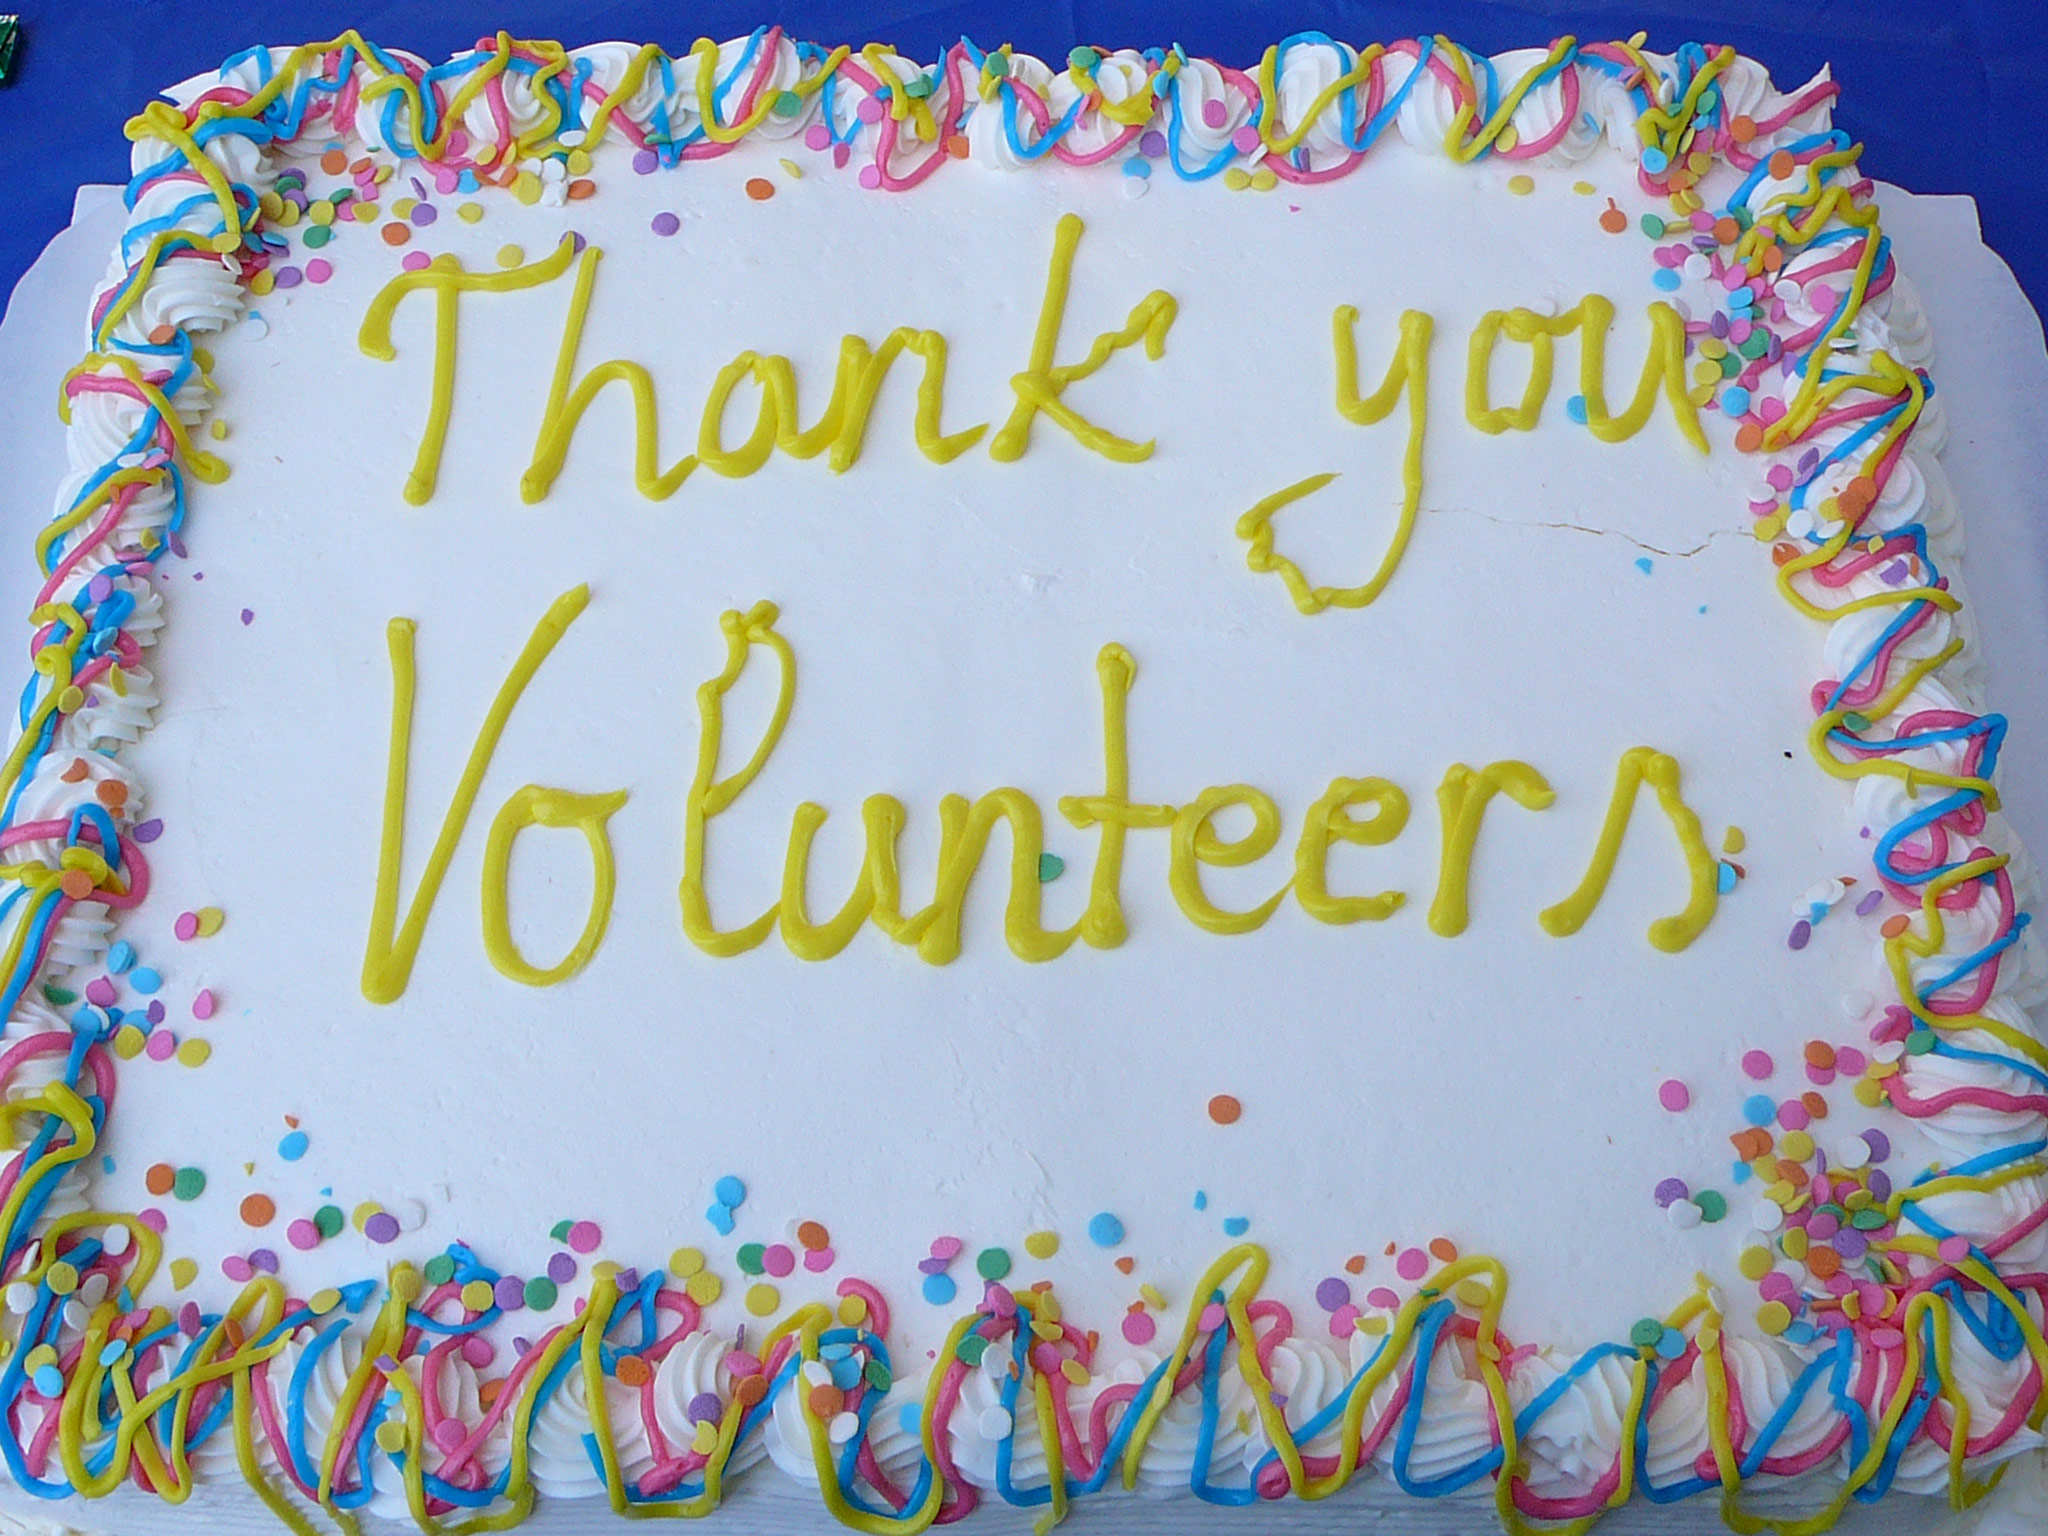 colorful cake saying thank you to volunteers